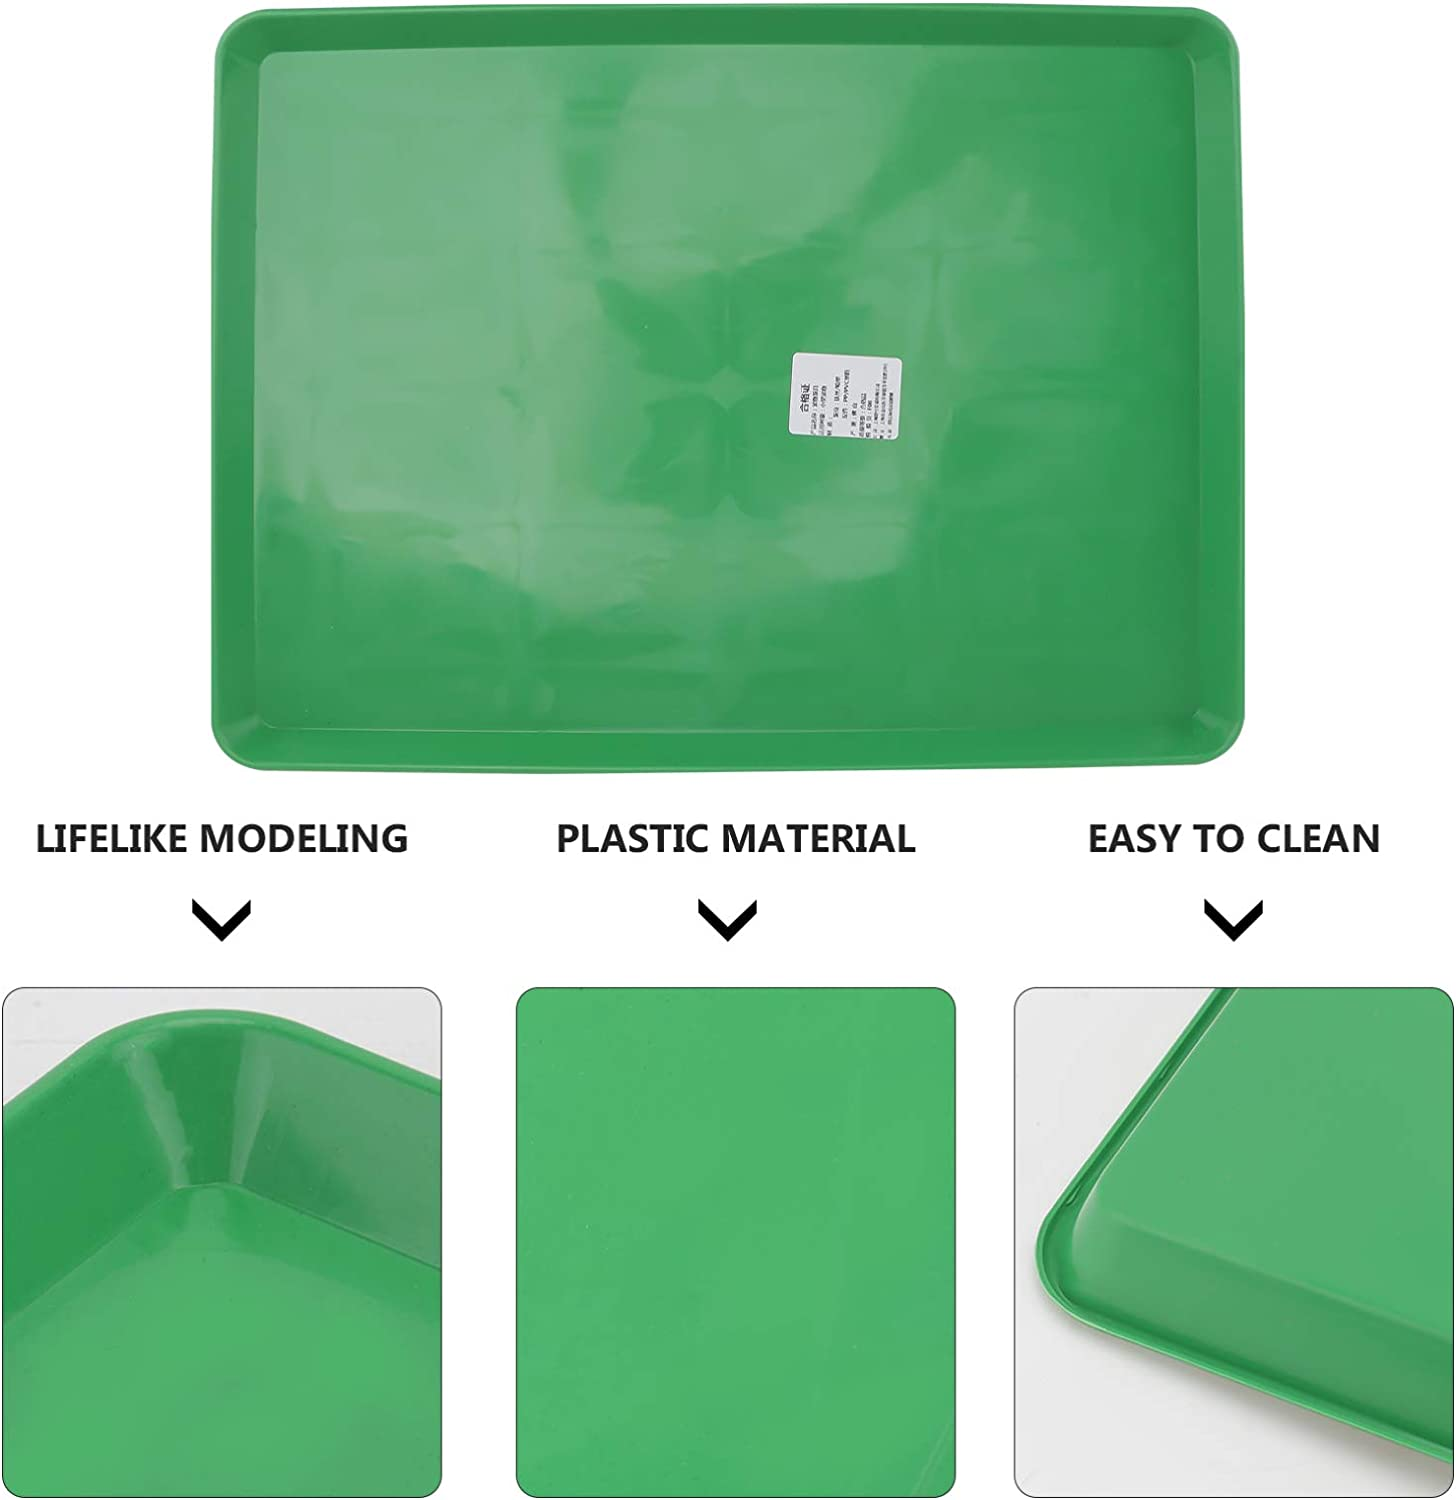 POPETPOP Replacement Pan for Dog Crate Plastic Dog Cage Tray Bottom for Pet Cages Crates Kennels Dogs Cat Rabbit Ferret Critter Green S